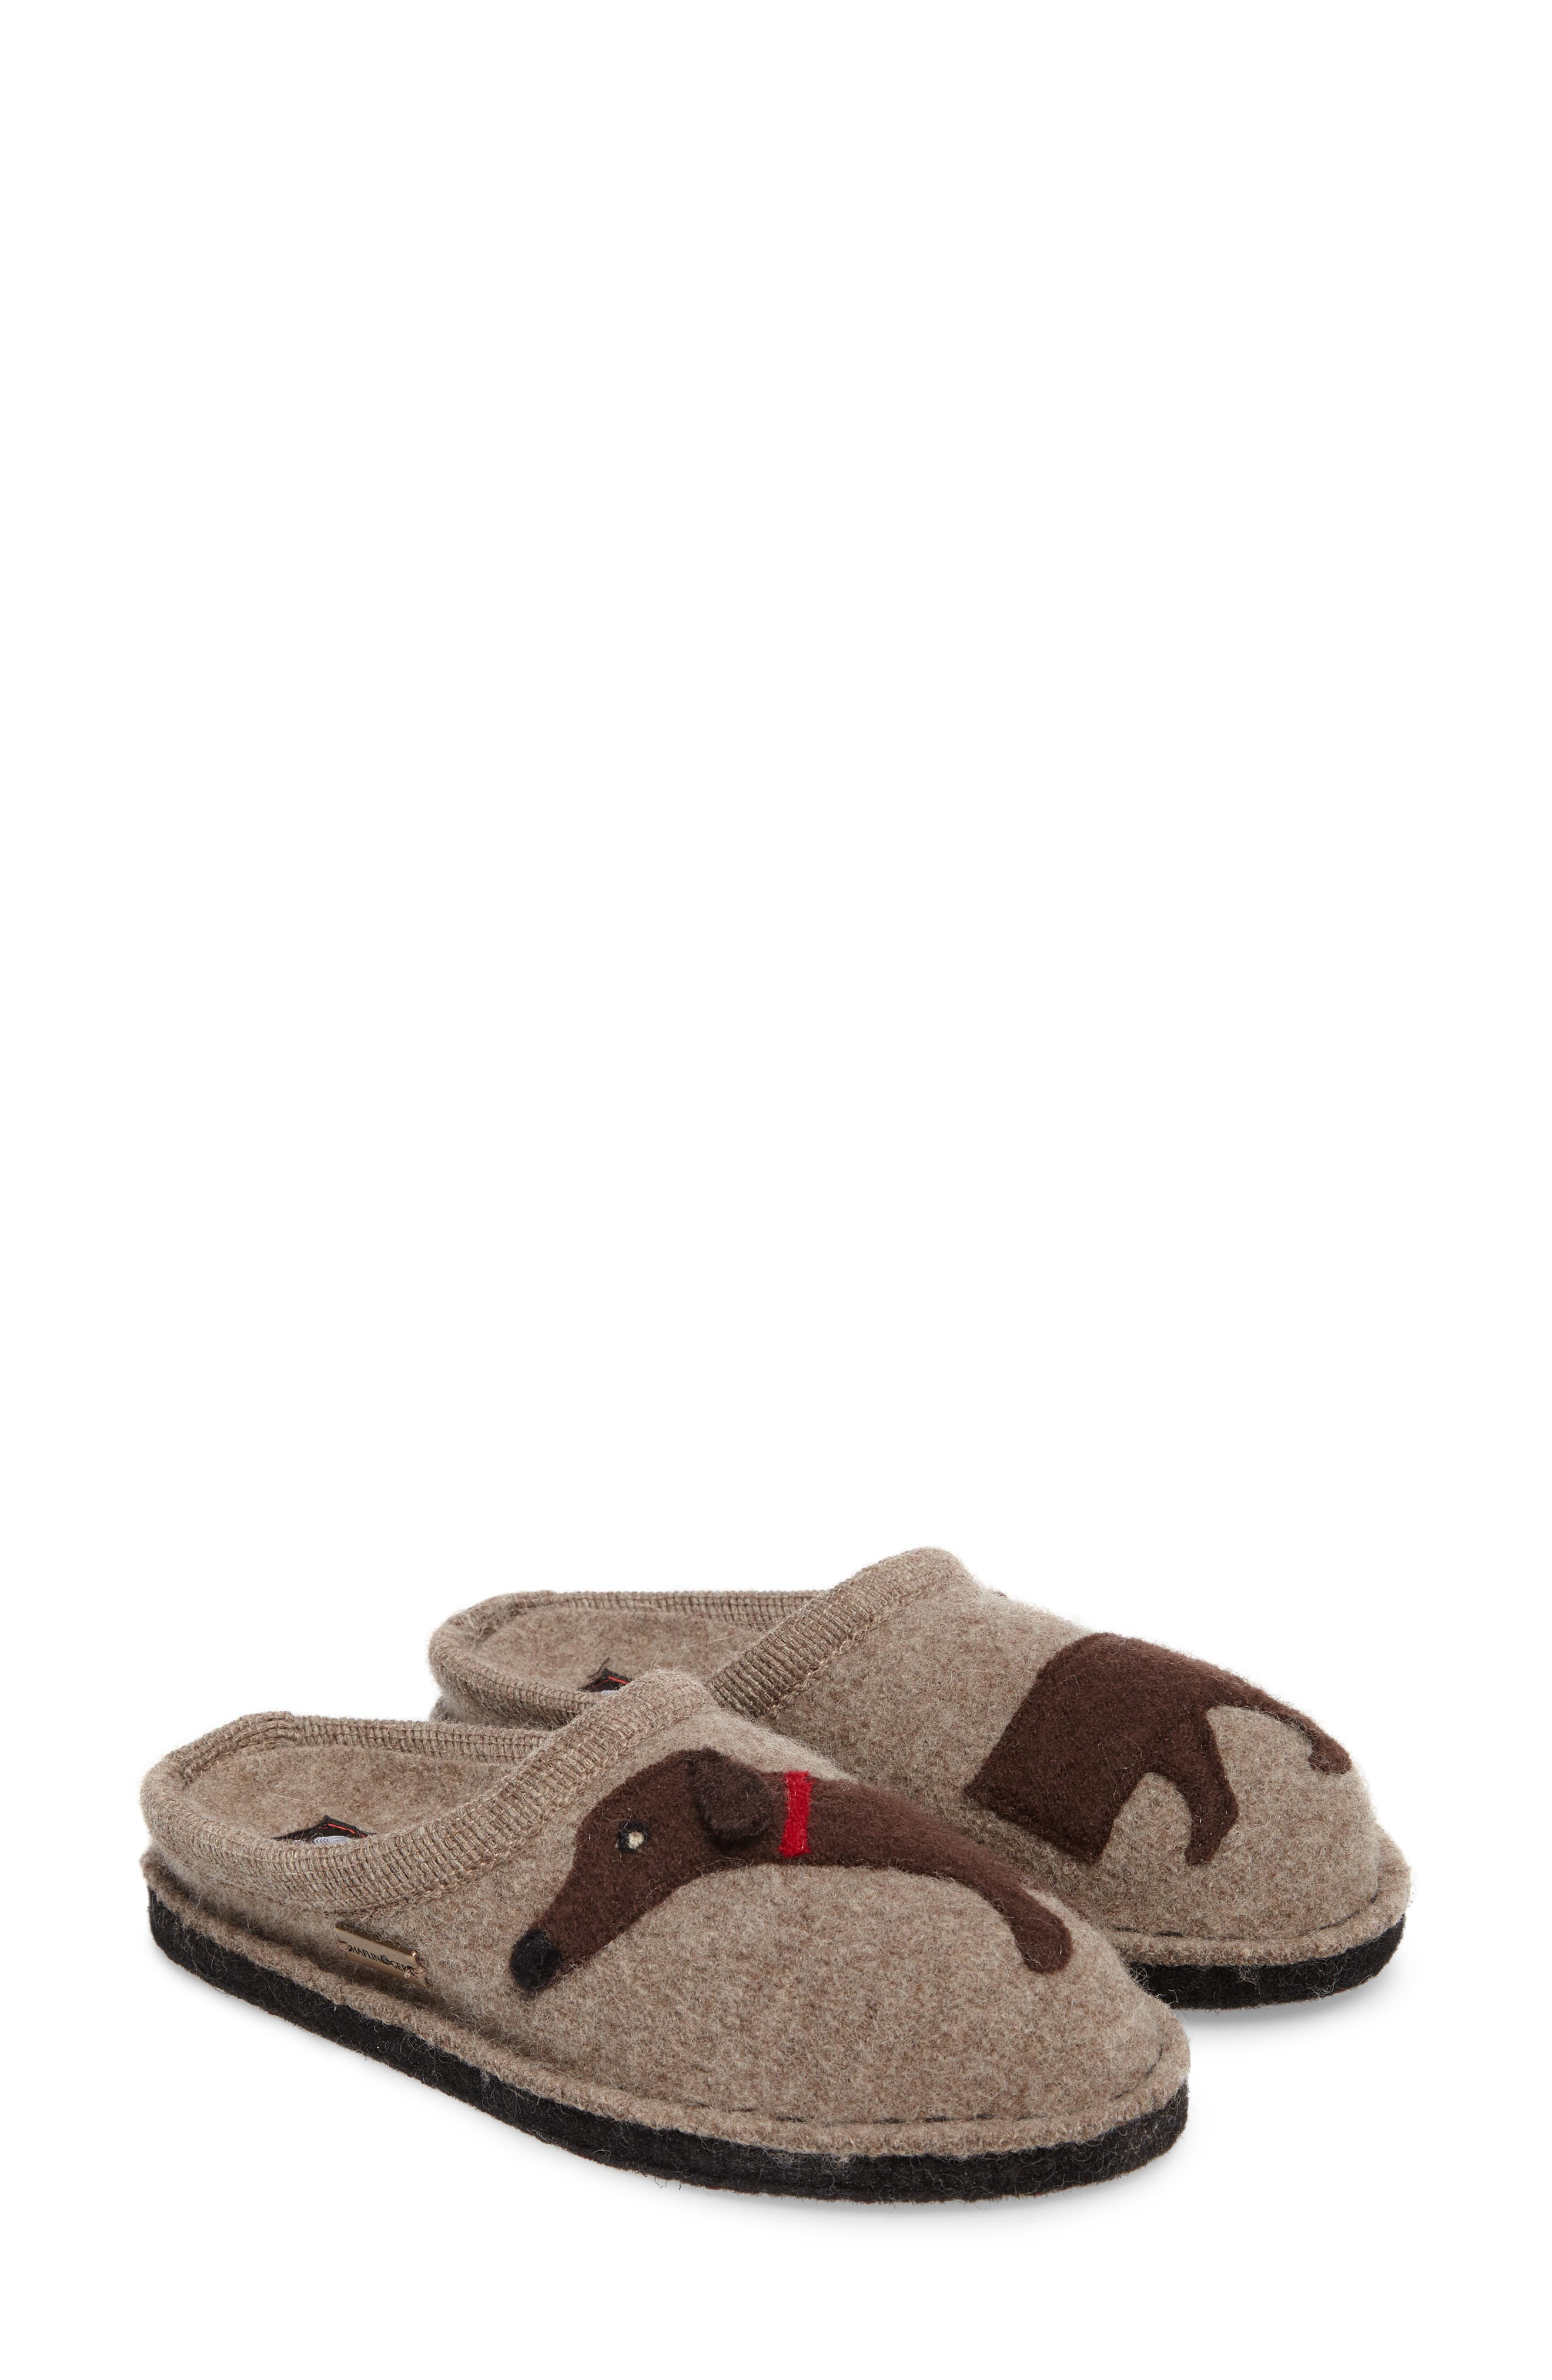 'Doggy' Slipper,                             Alternate thumbnail 3, color,                             EARTH